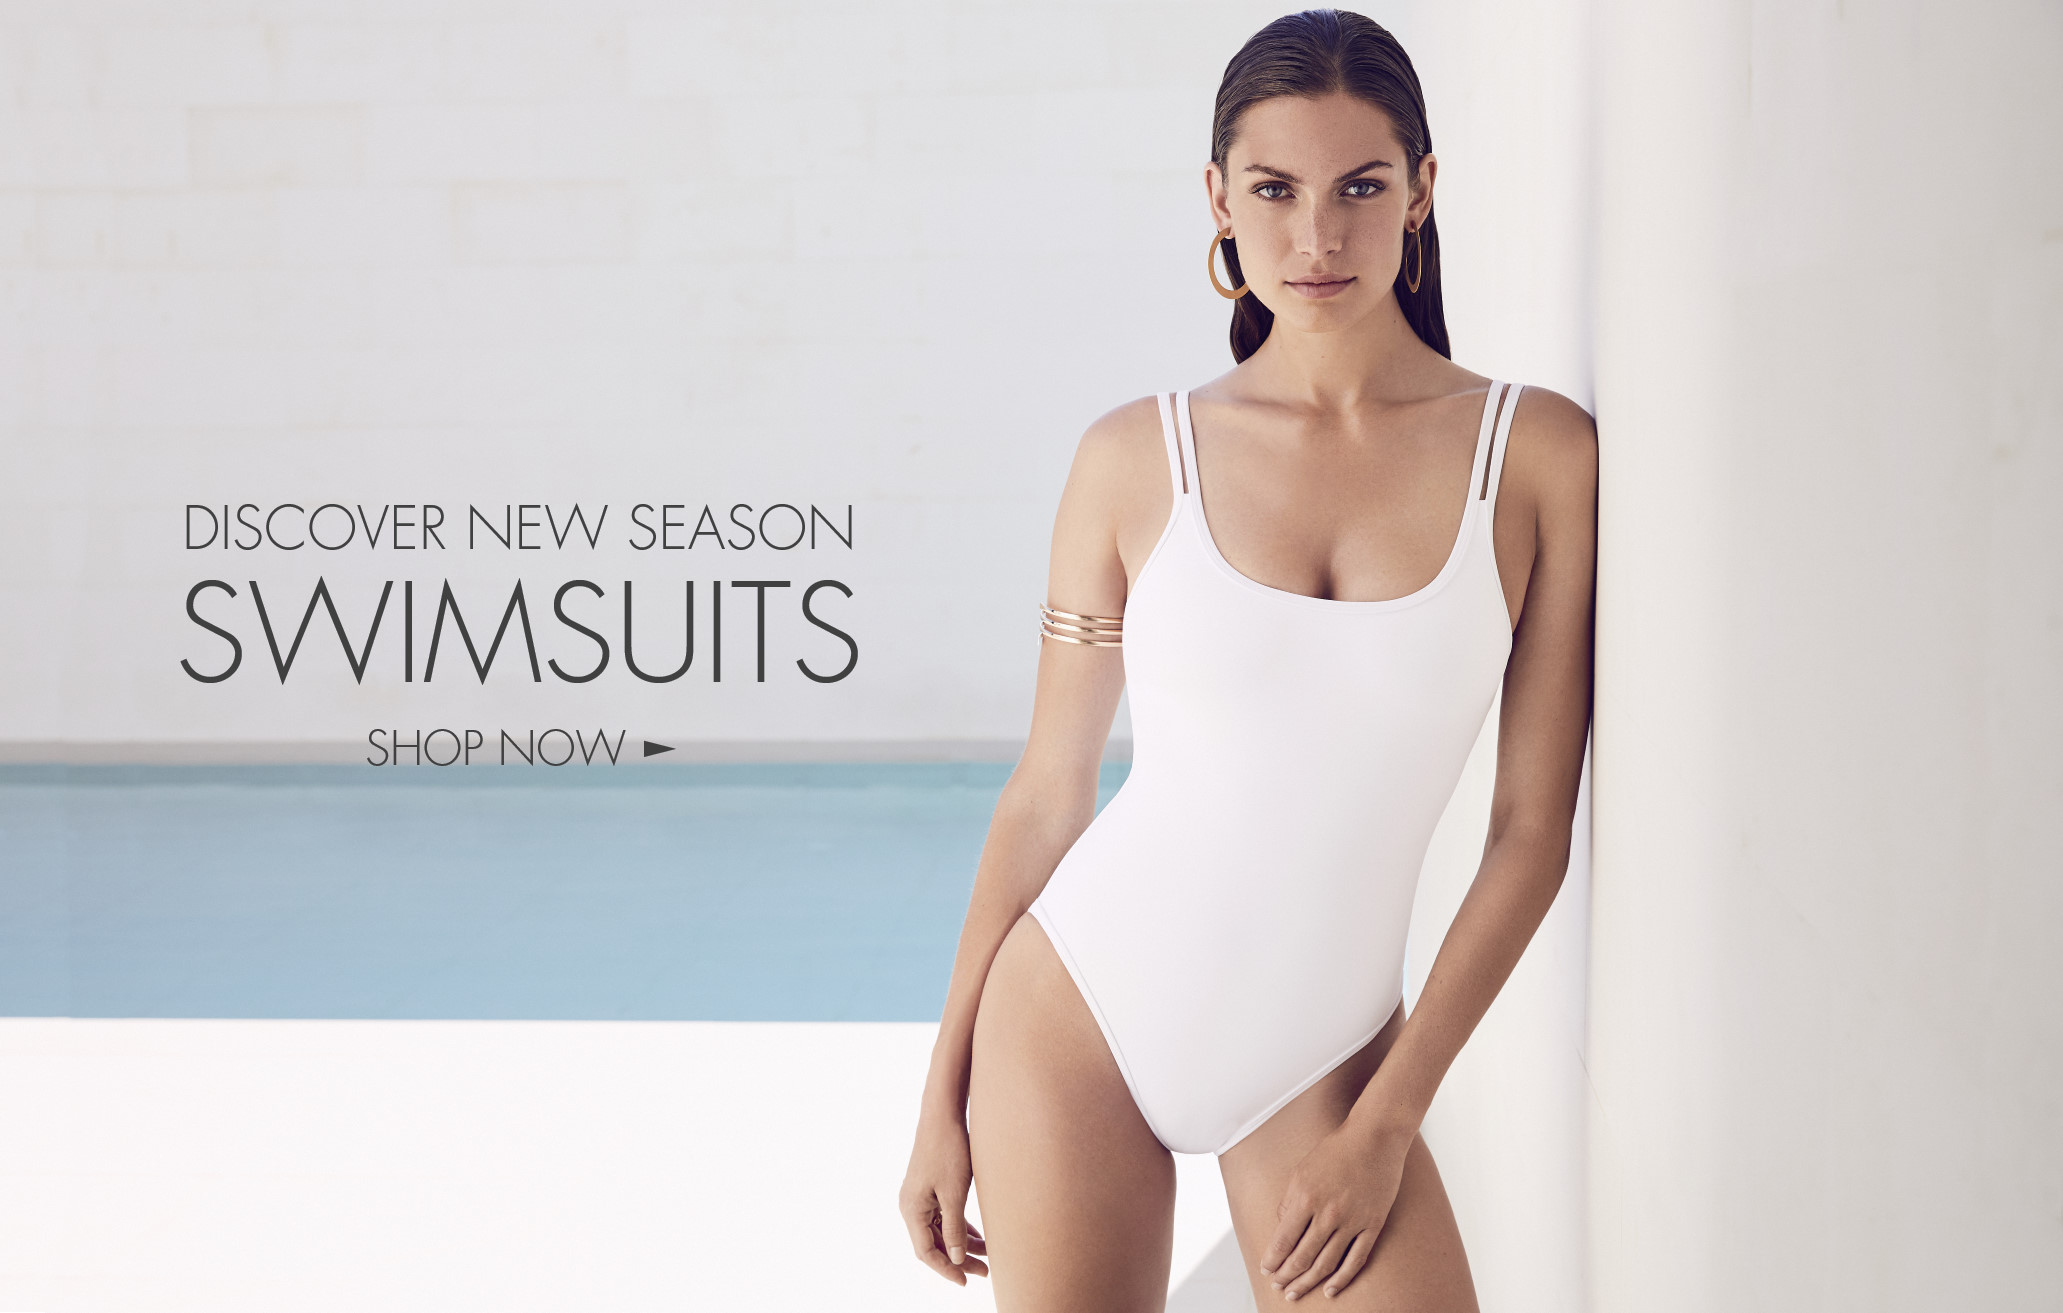 New Season Swimsuits